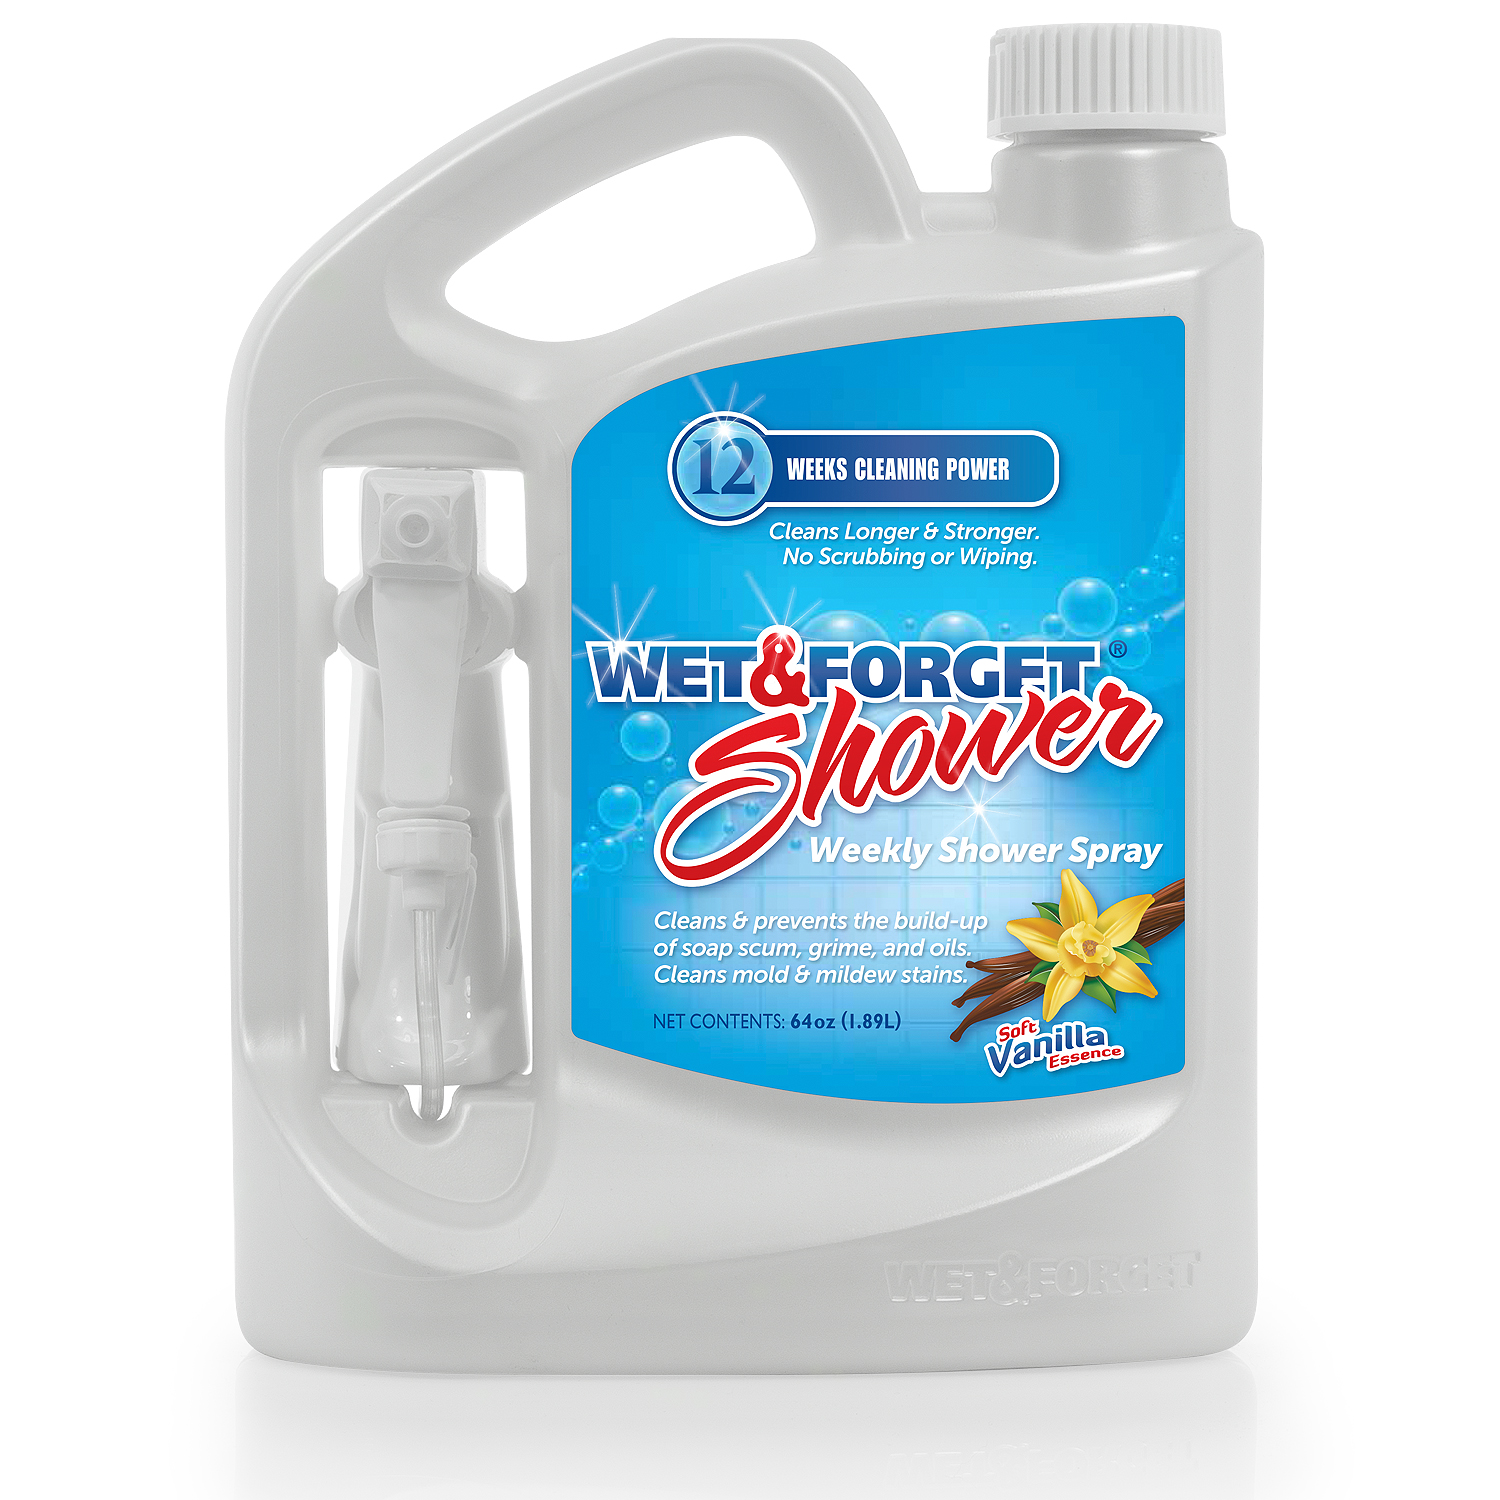 Wet and Forget Weekly Shower Cleaner, 64 Fl Oz - Walmart.com